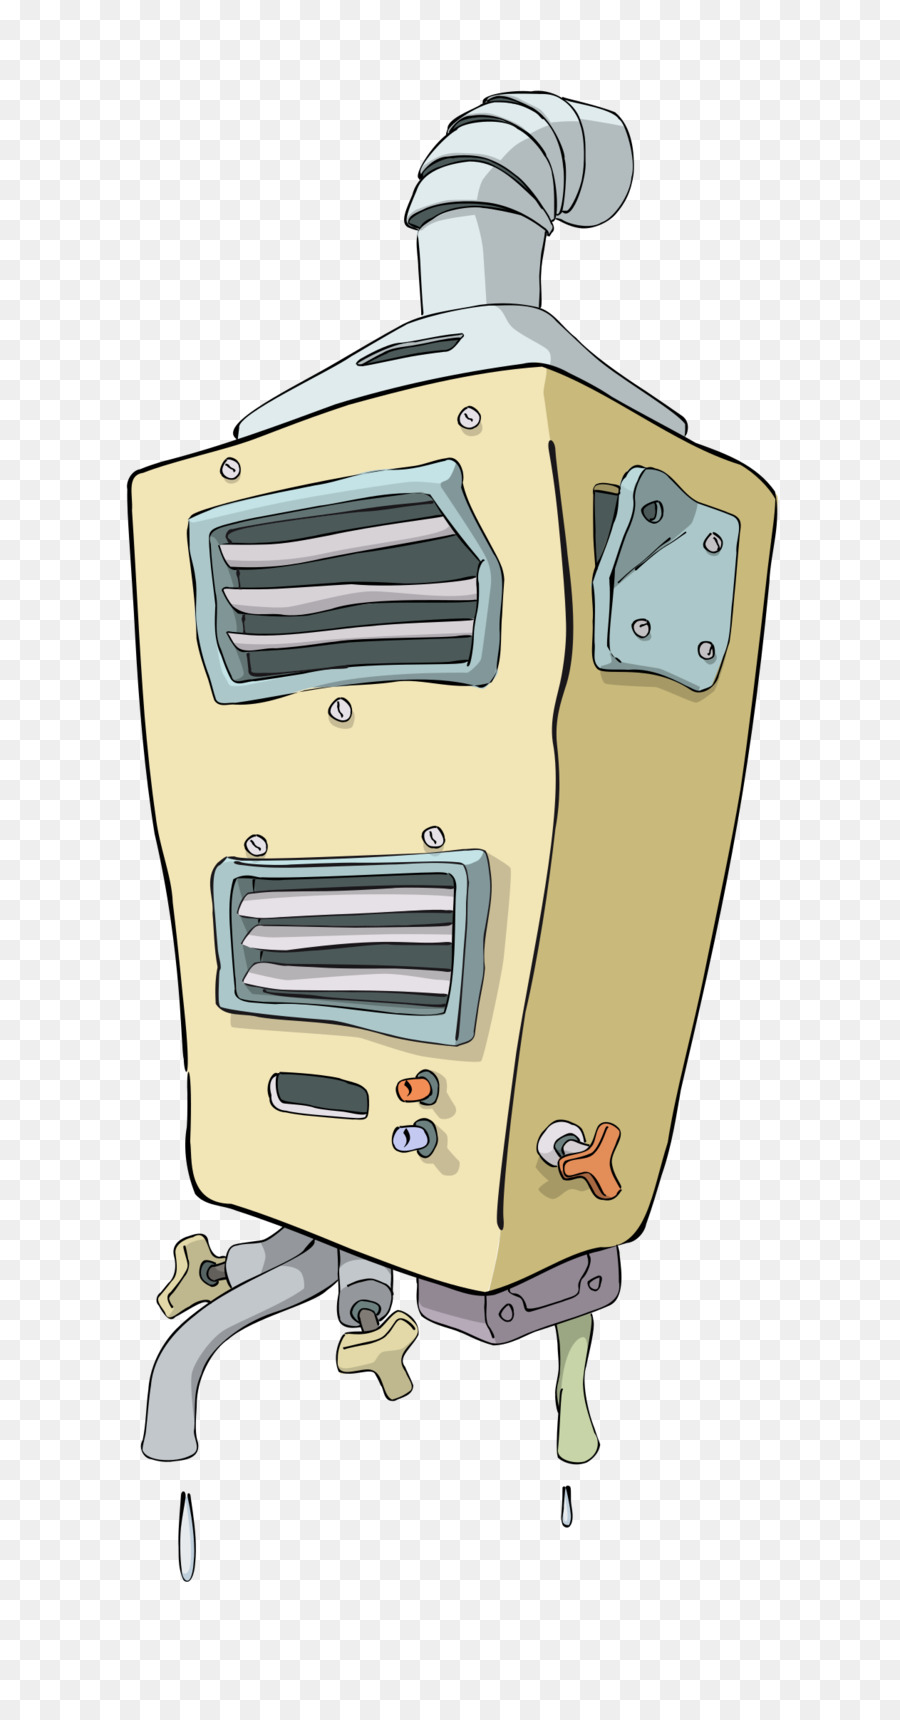 Water heater clipart free graphic stock Water Cartoon png download - 1263*2400 - Free Transparent ... graphic stock